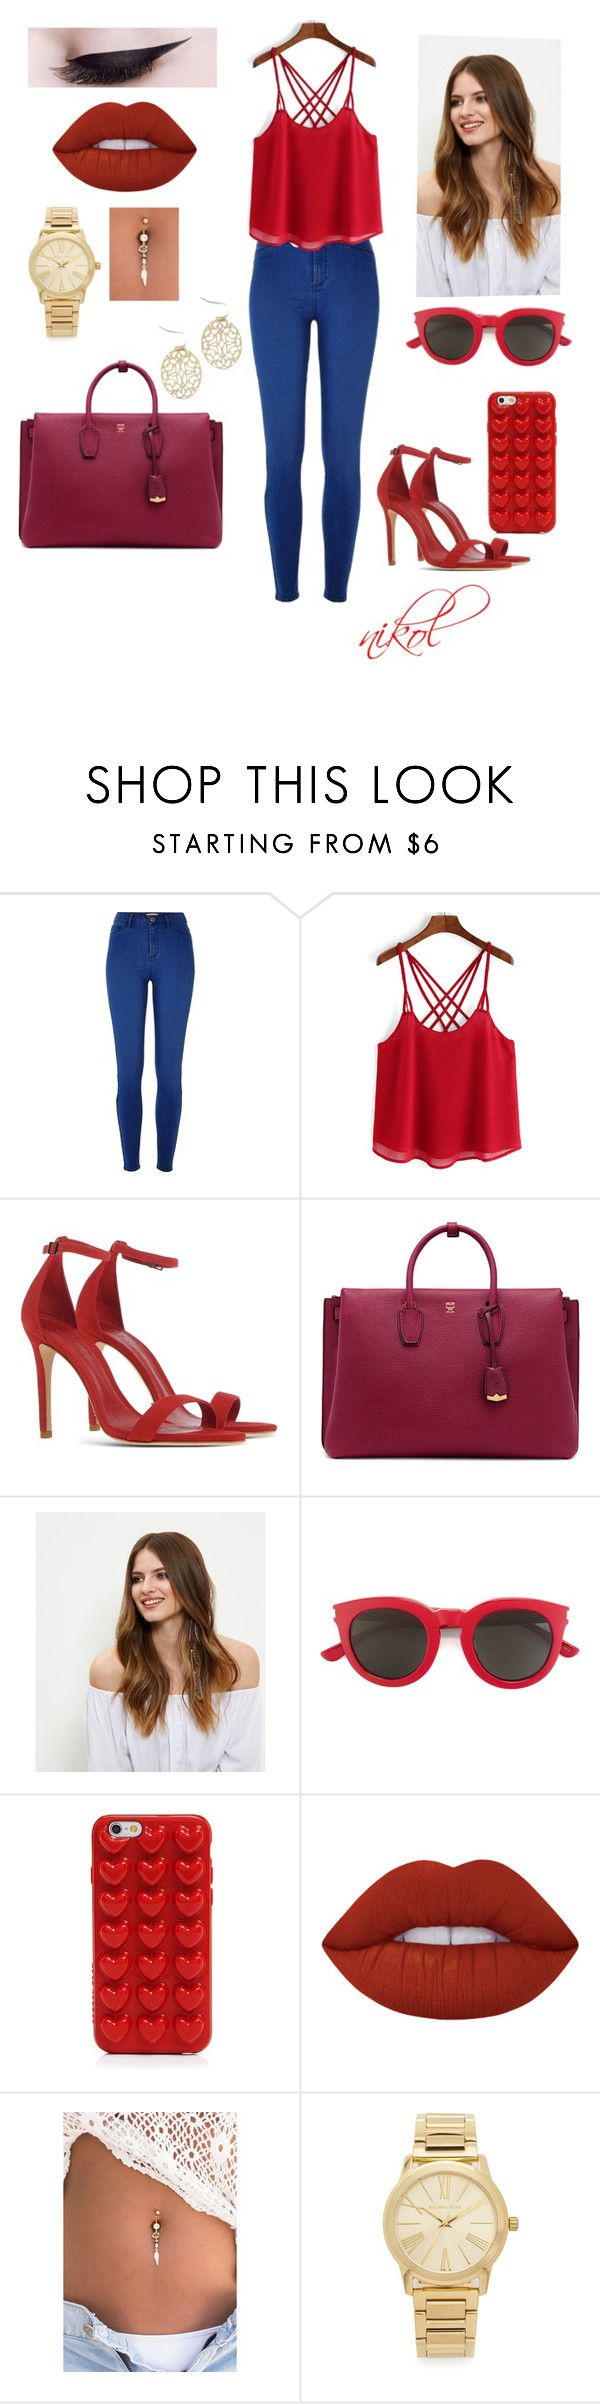 """Untitled #239"" by nikolcherni ❤ liked on Polyvore featuring River Island, Schutz, MCM, New Look, Yves Saint Laurent, Marc Jacobs, Lime Crime and Michael Kors"